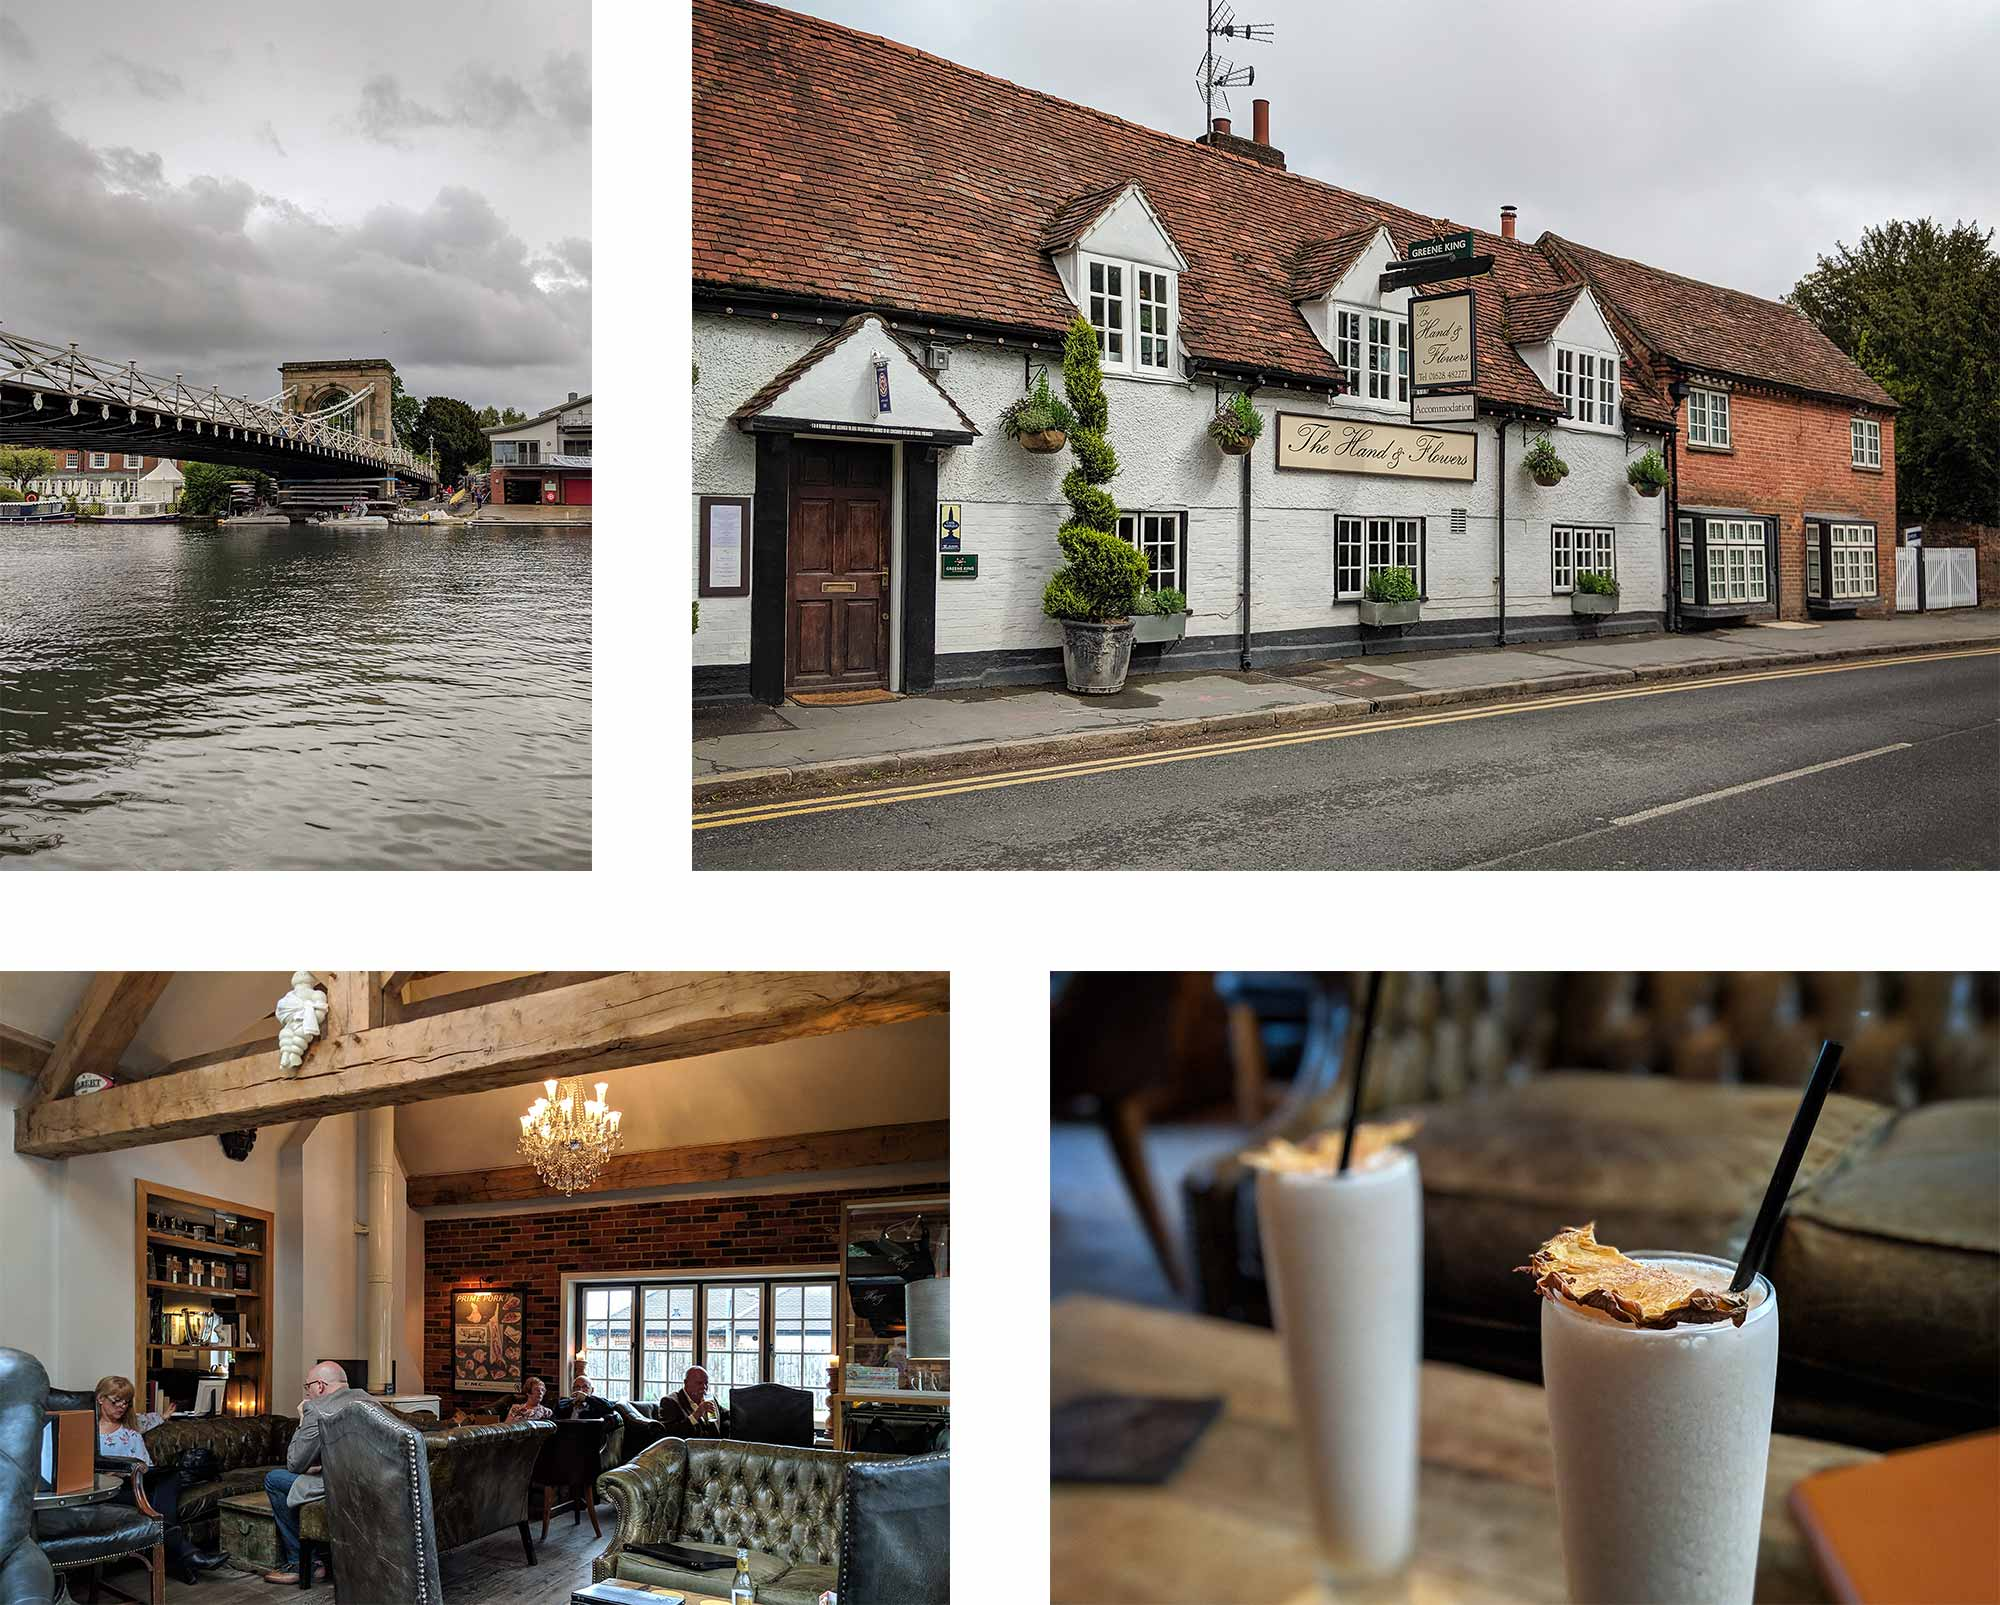 A collage of Marlow's suspension bridge, The Hand & Flowers' exterior and interior, and some pina coladas.